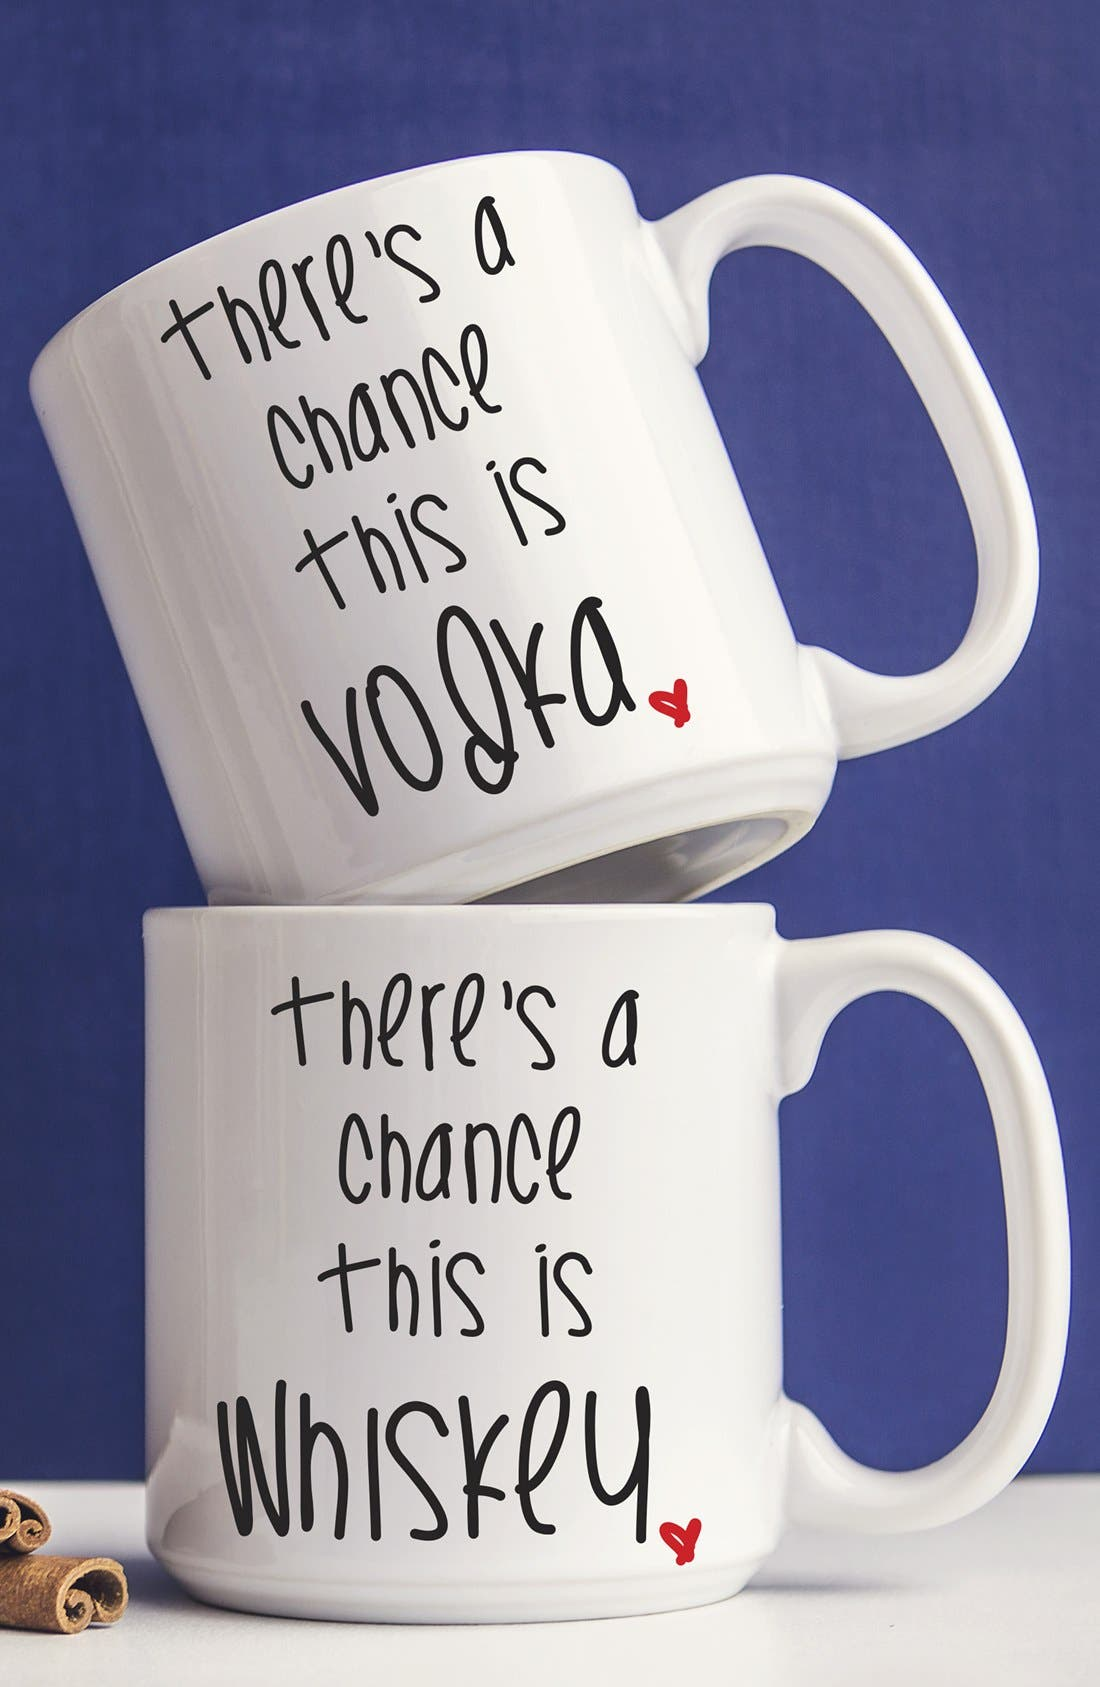 Alternate Image 1 Selected - Cathy's Concepts 'There's a Chance' Ceramic Coffee Mugs (Set of 2)